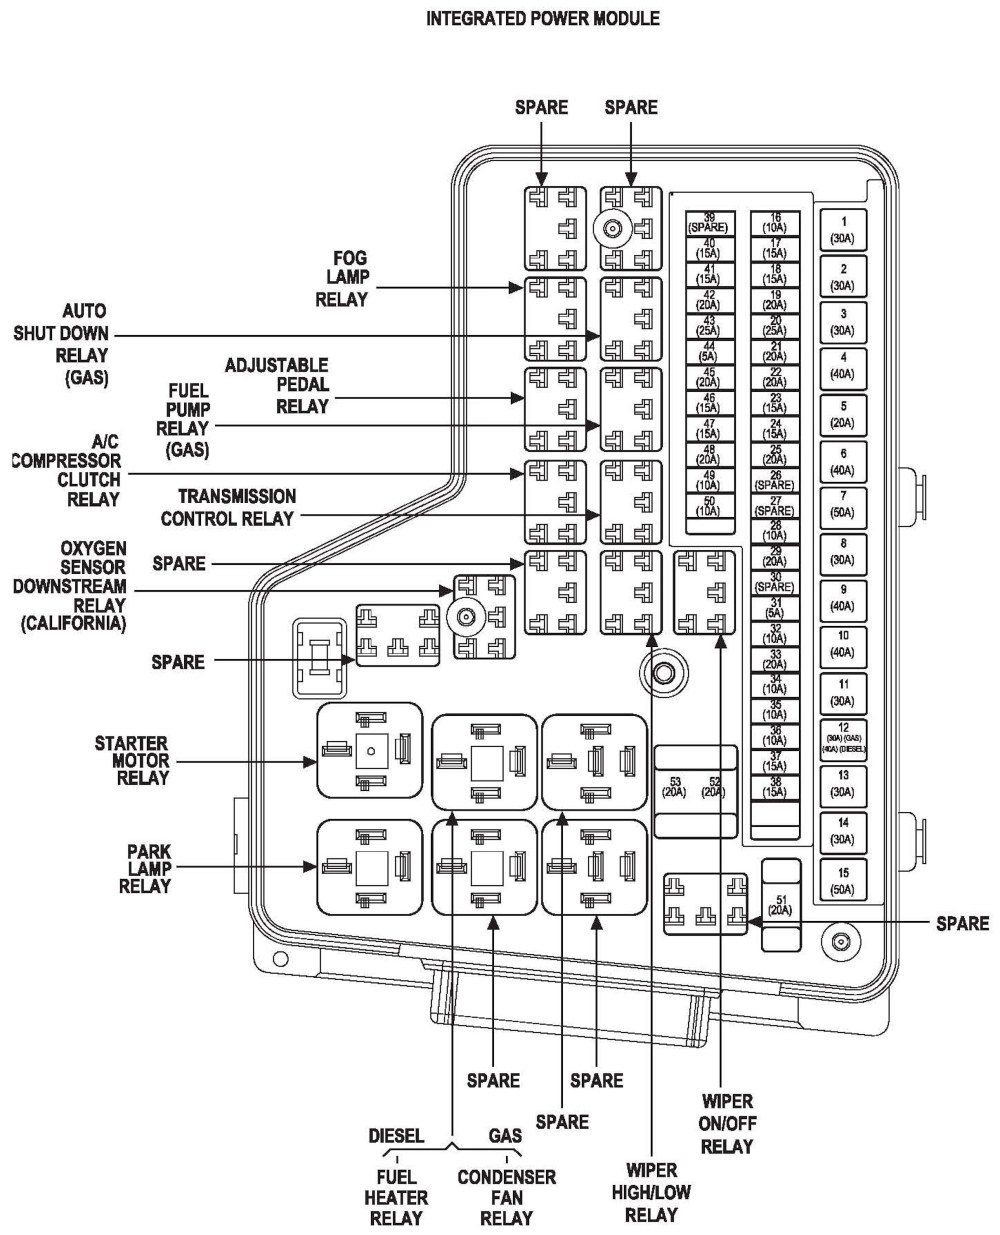 medium resolution of 2004 dodge ram 3500 fuse box diagram wiring diagram third level 05 dodge durango fuse diagram